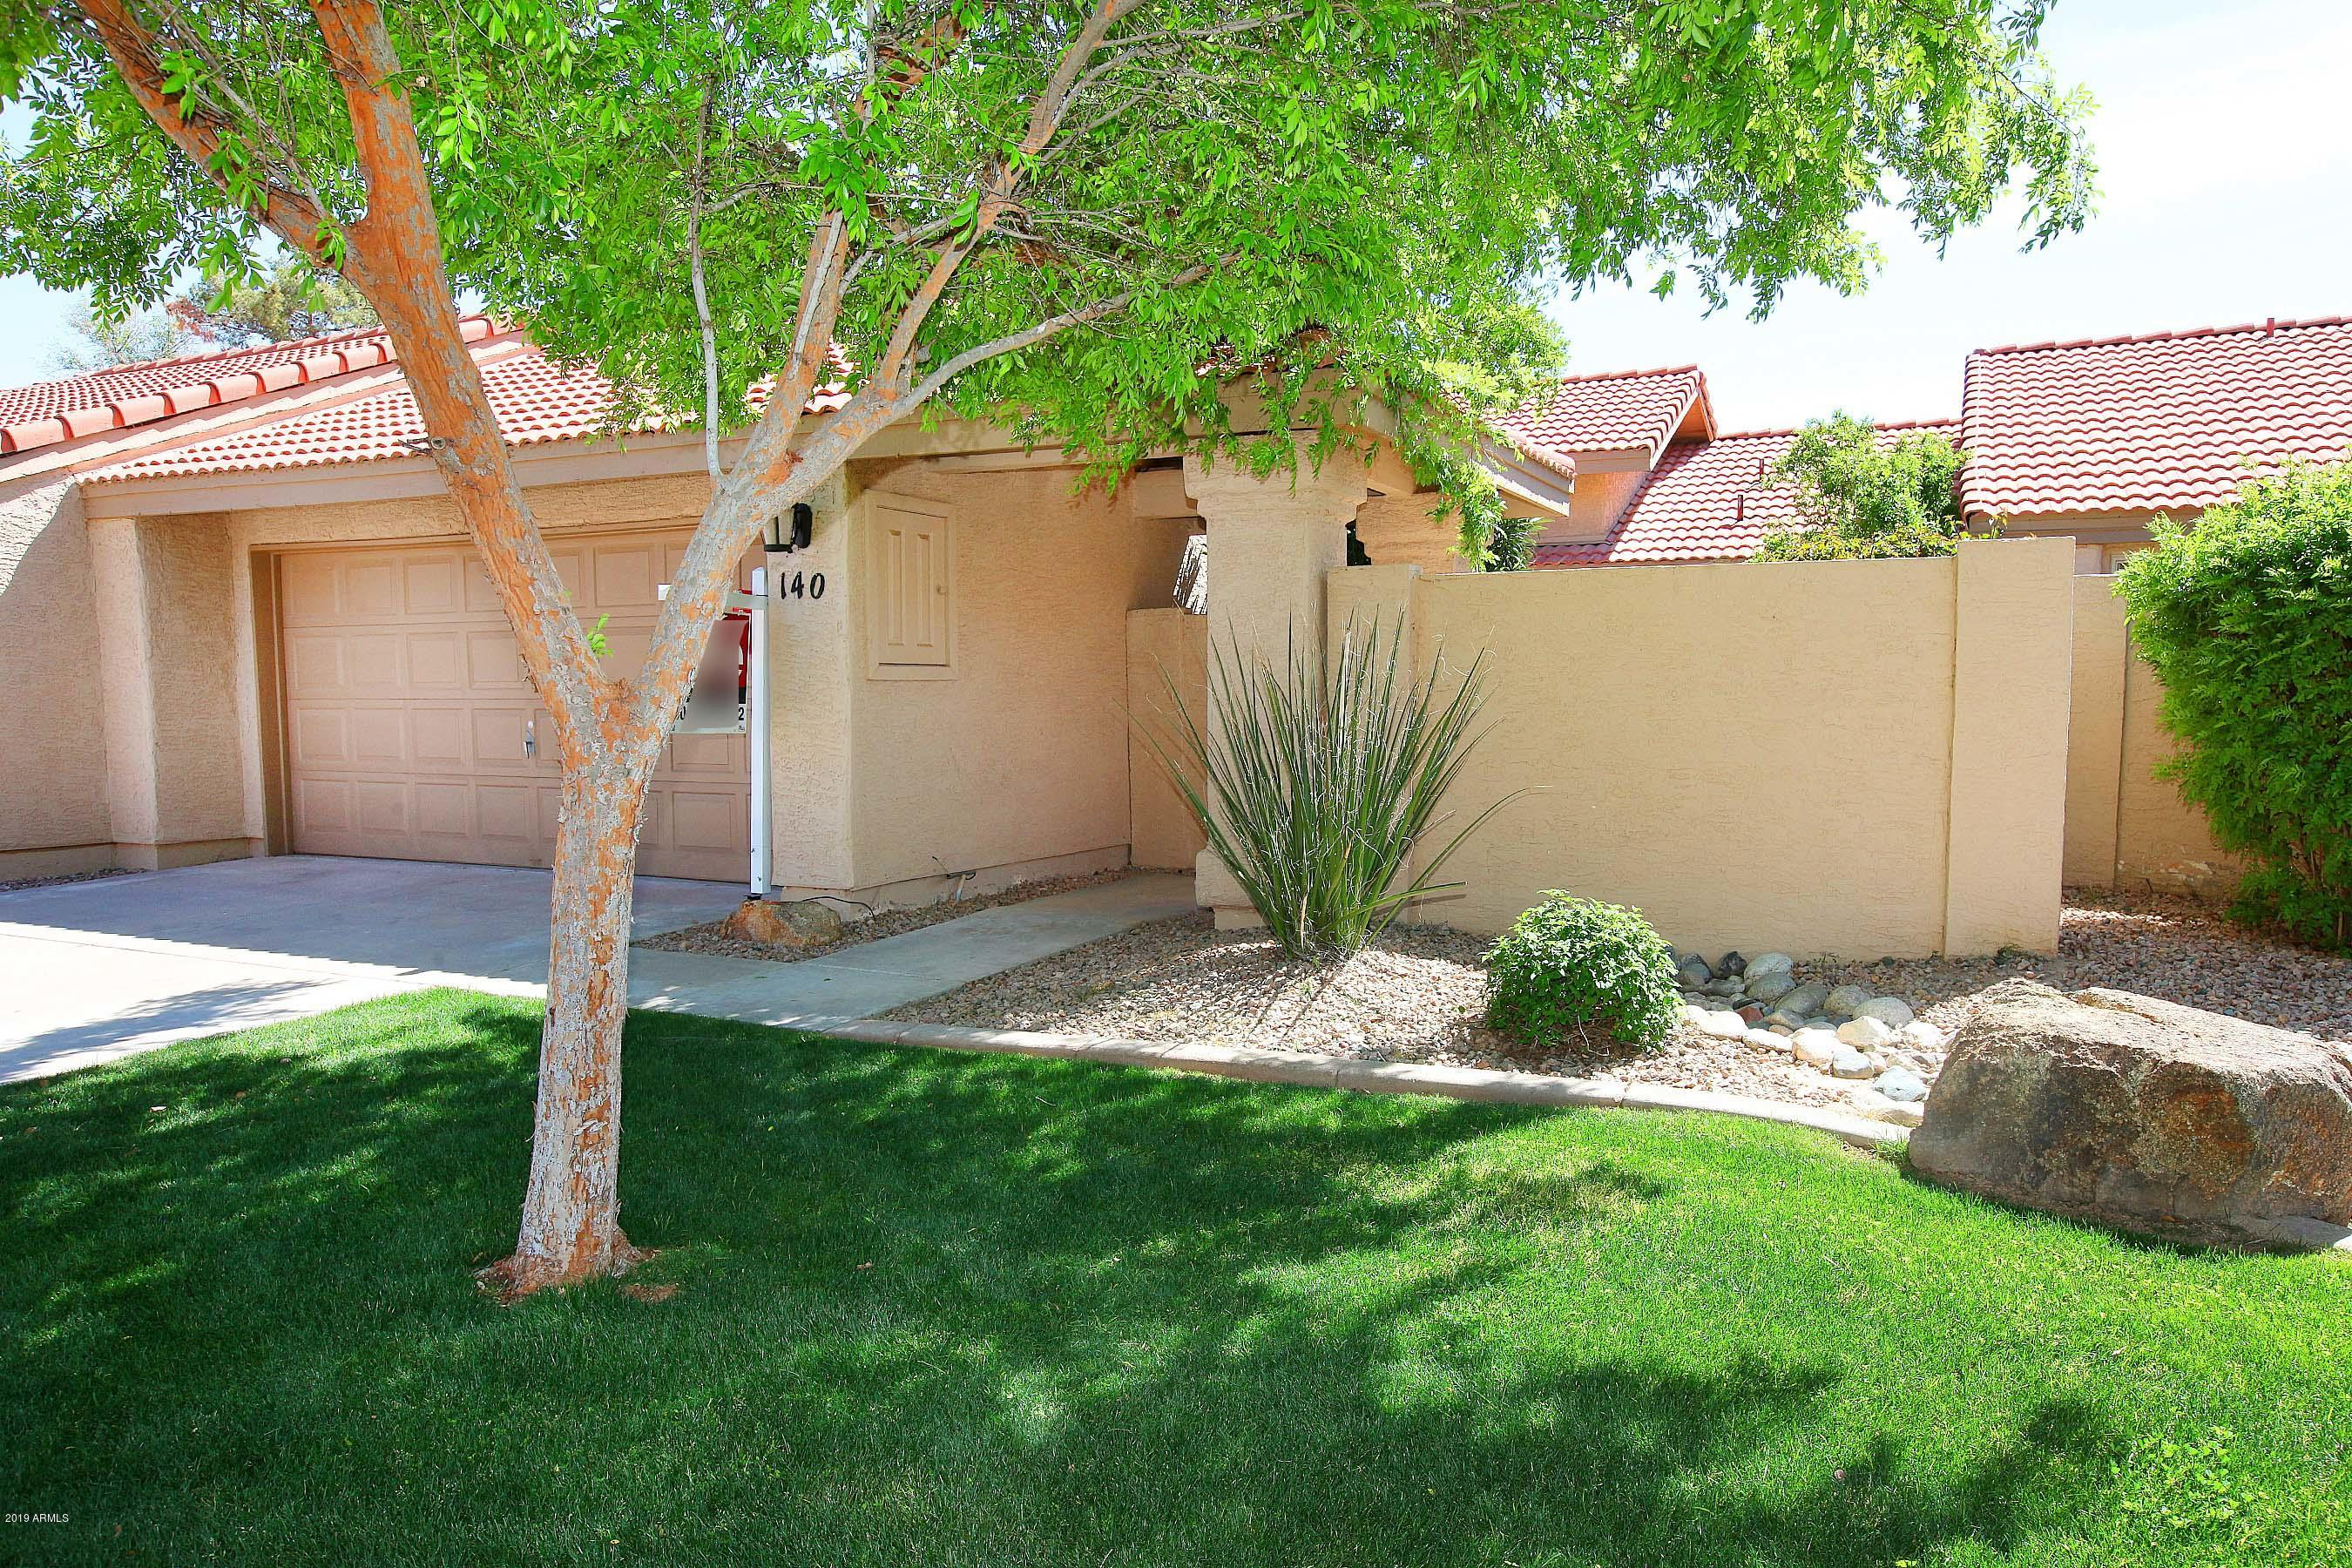 Photo of 945 N PASADENA -- #140, Mesa, AZ 85201